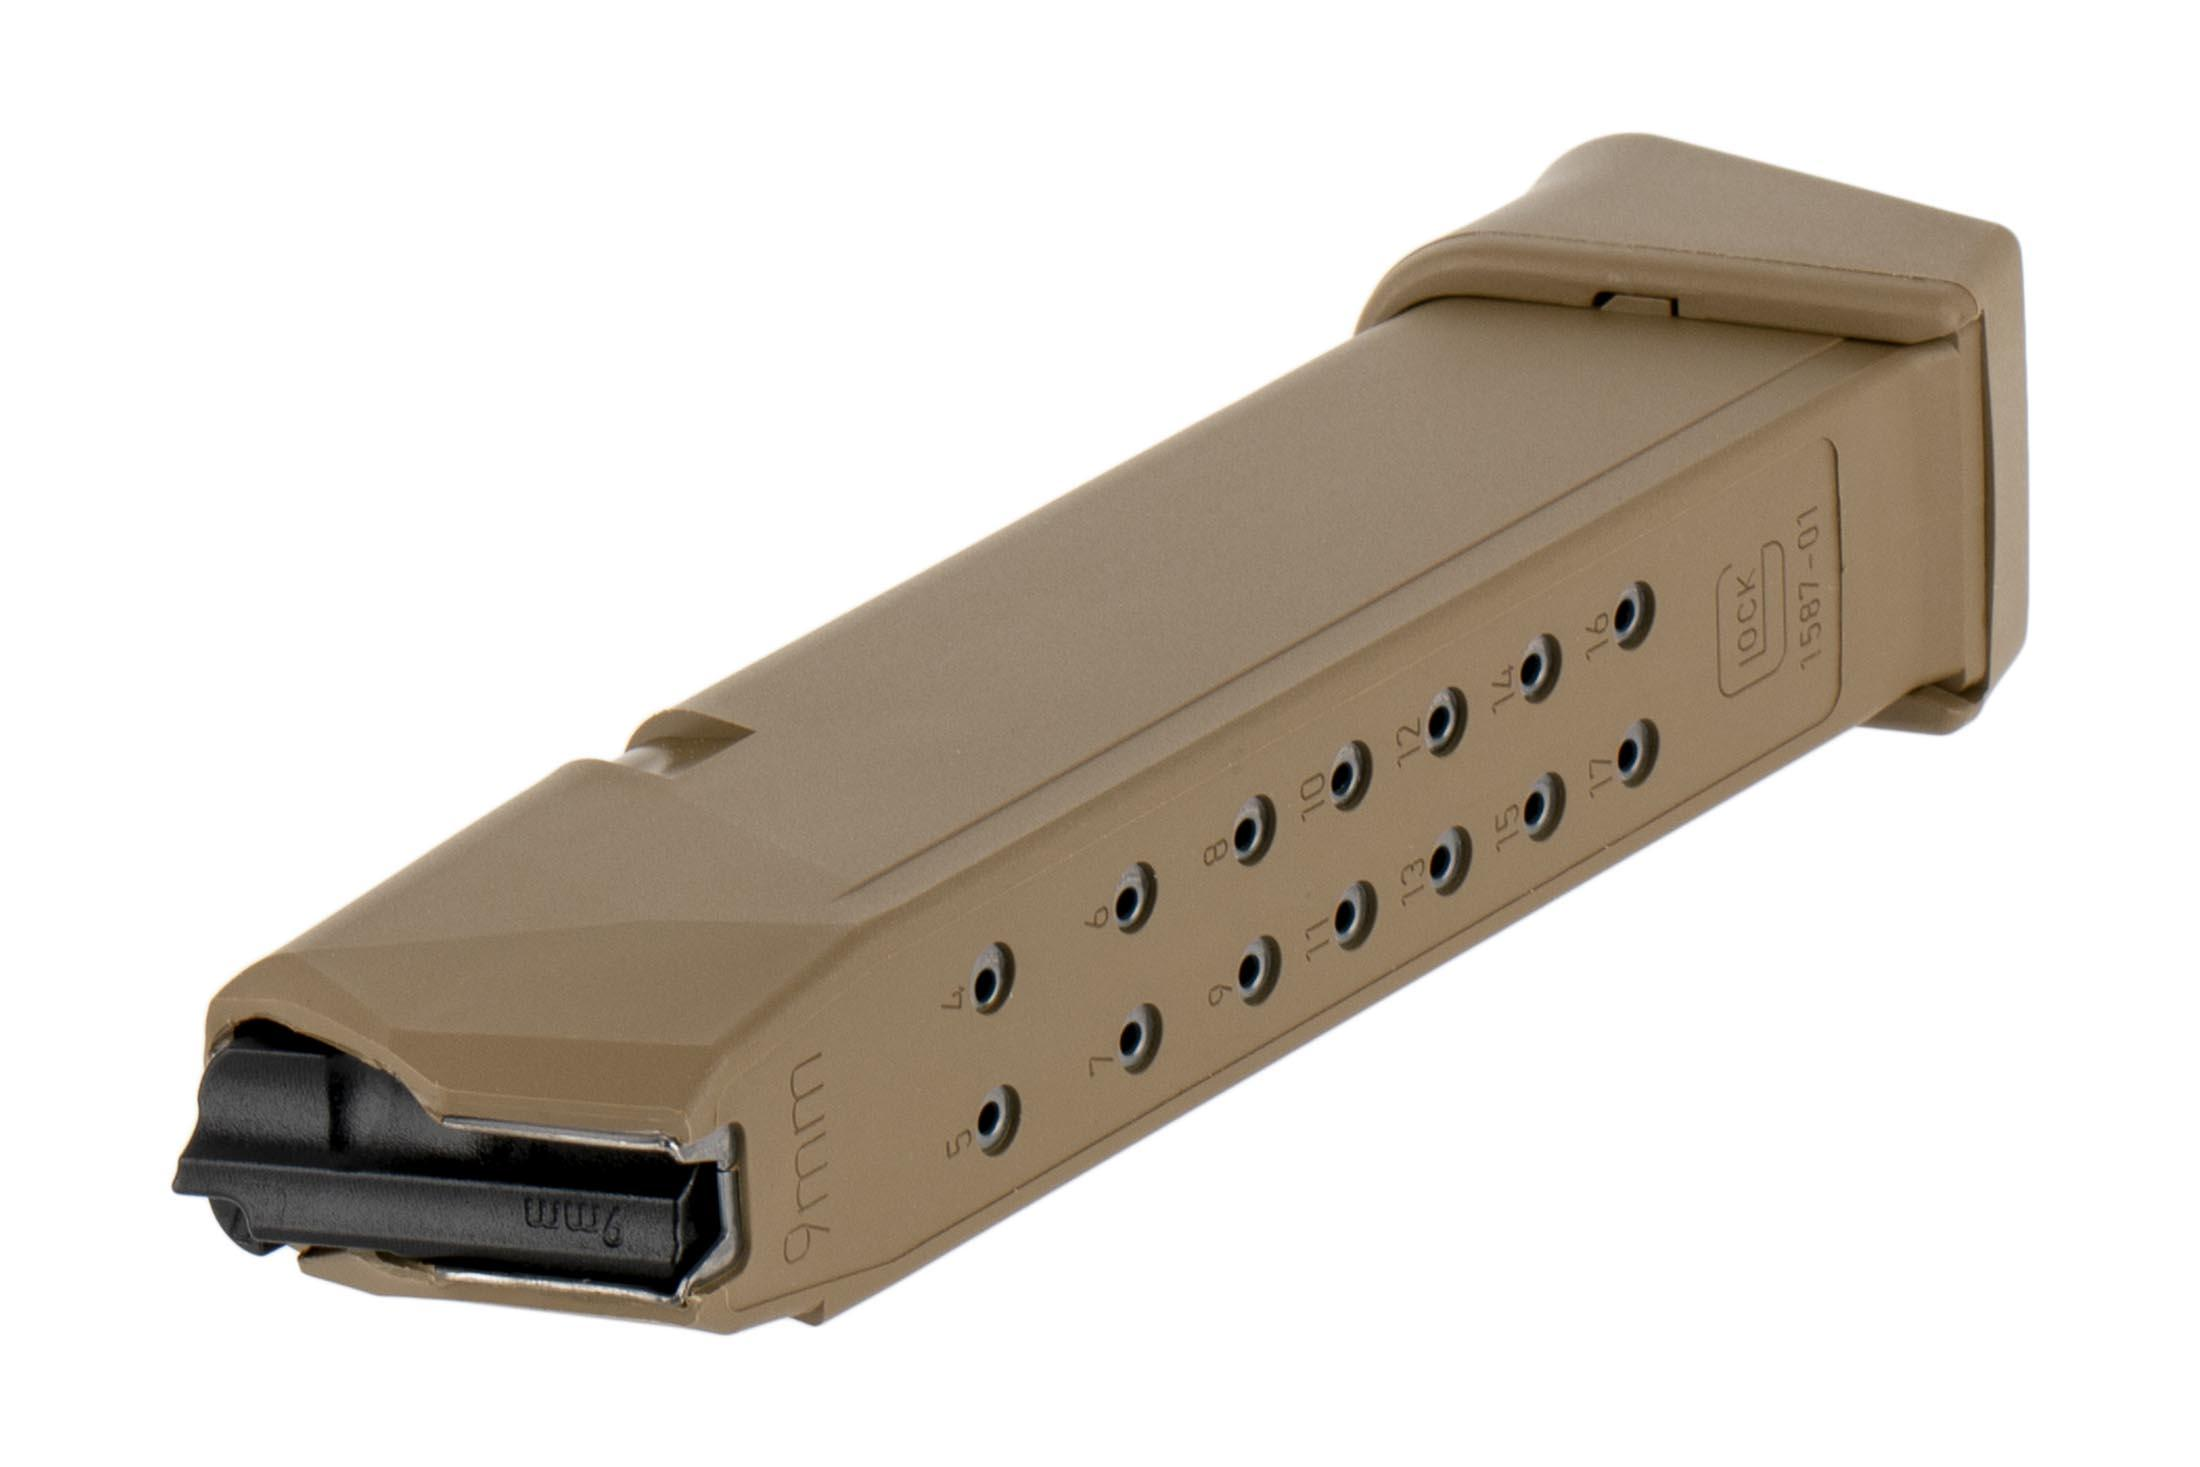 Glock coyote 19-round G19x handgun mag for 9x19mm ammo has hardened steel feed lips and polymer body